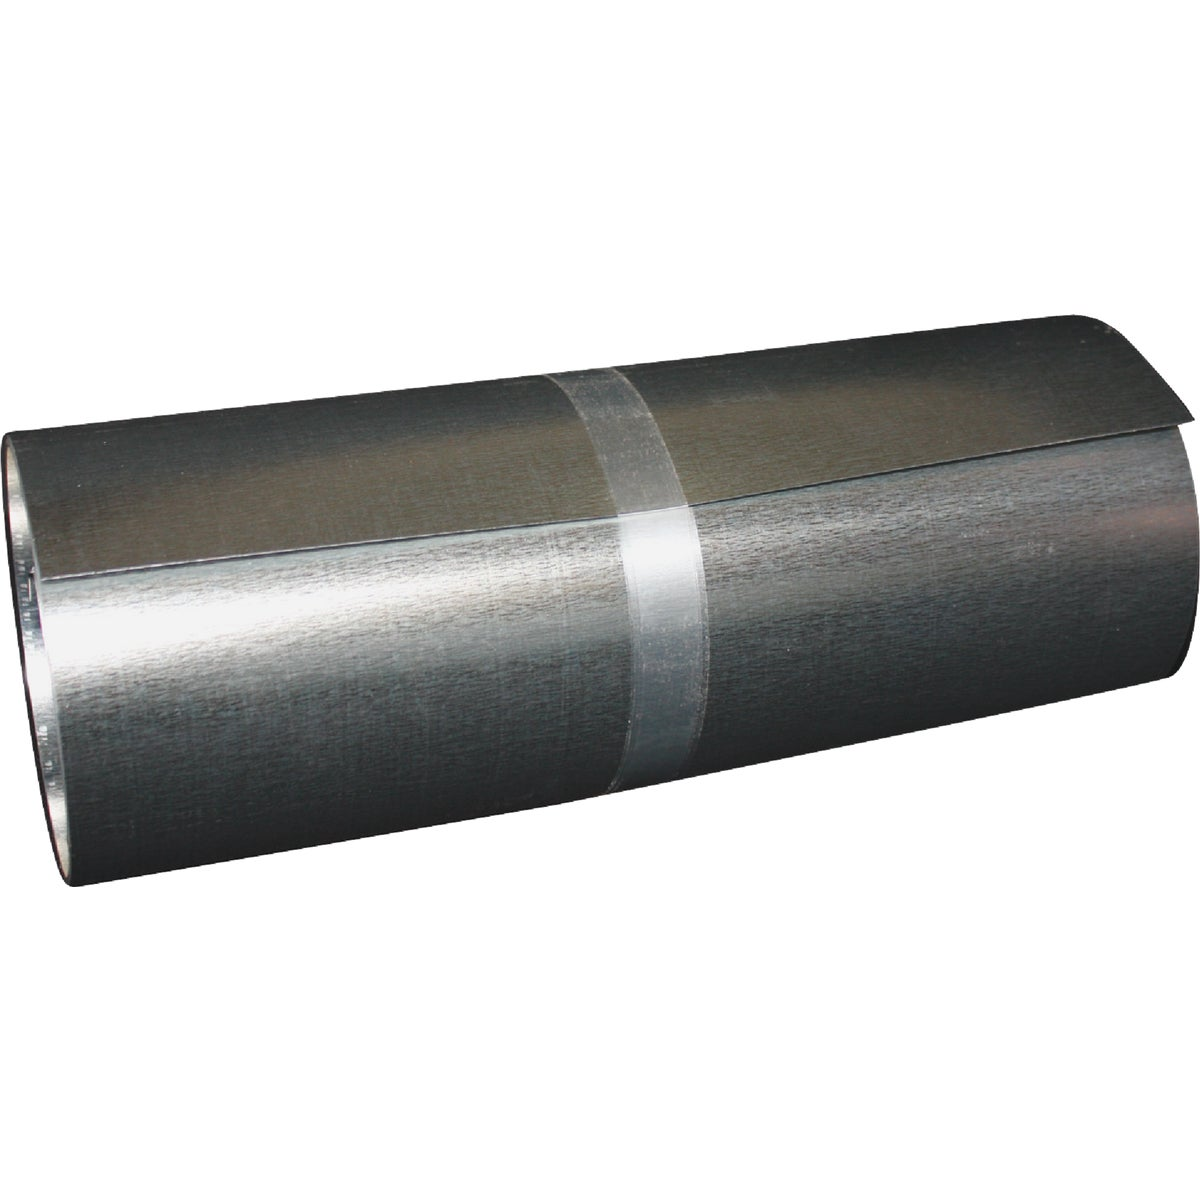 "10""X50' GALV ROLL VALLEY - 30030-GV10 by Klauer Mfg Co"